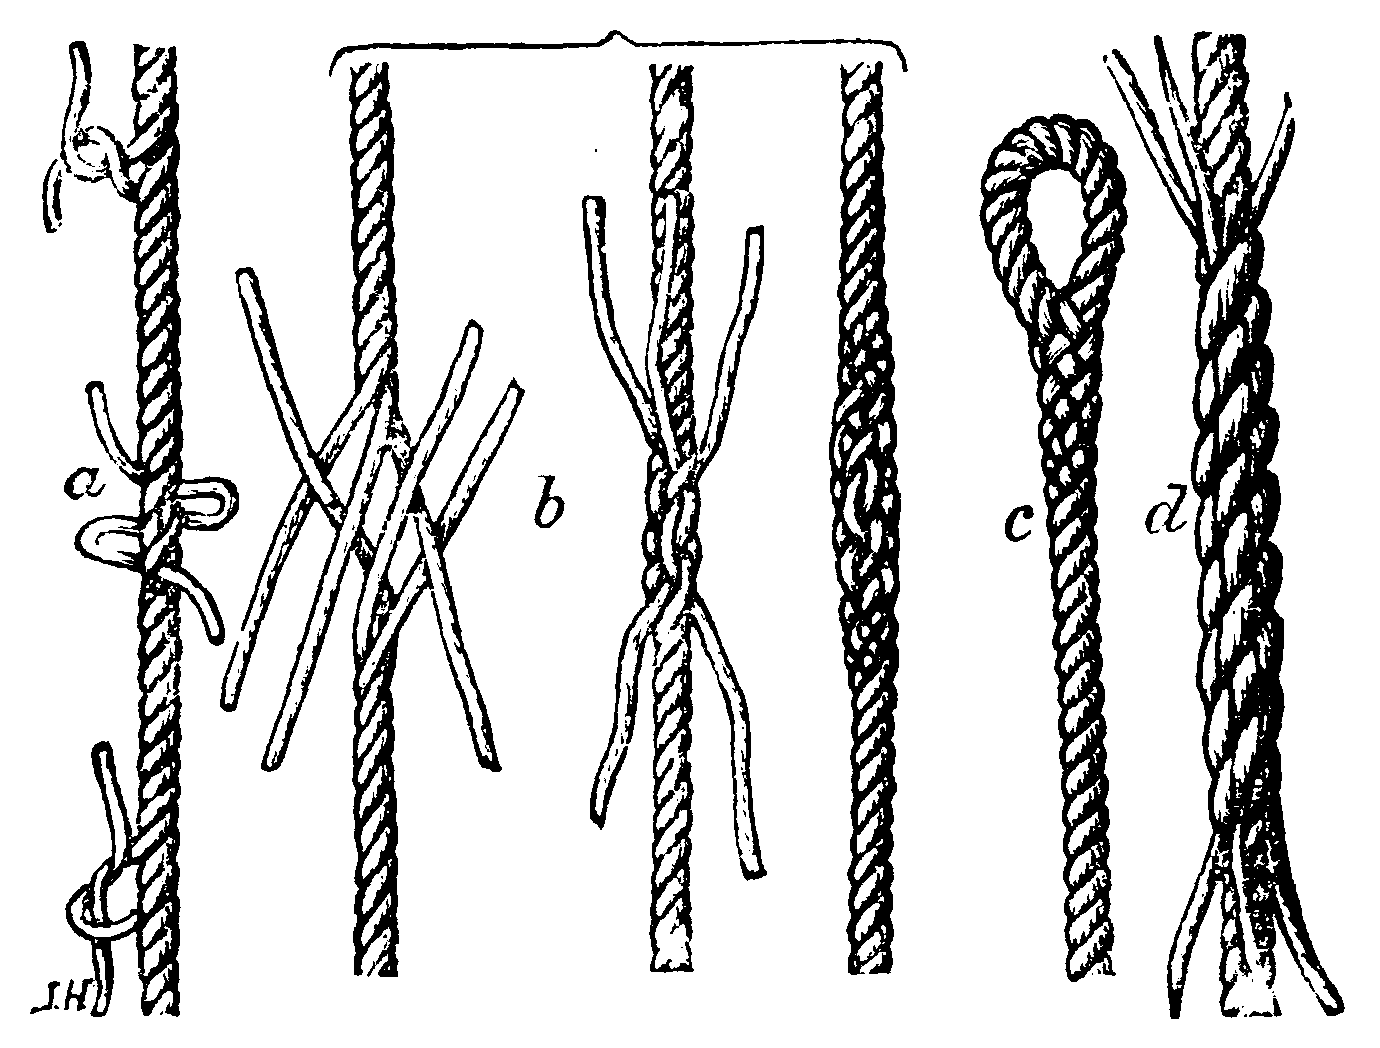 Knots/Rope splicing - Wikibooks, open books for an open world ...